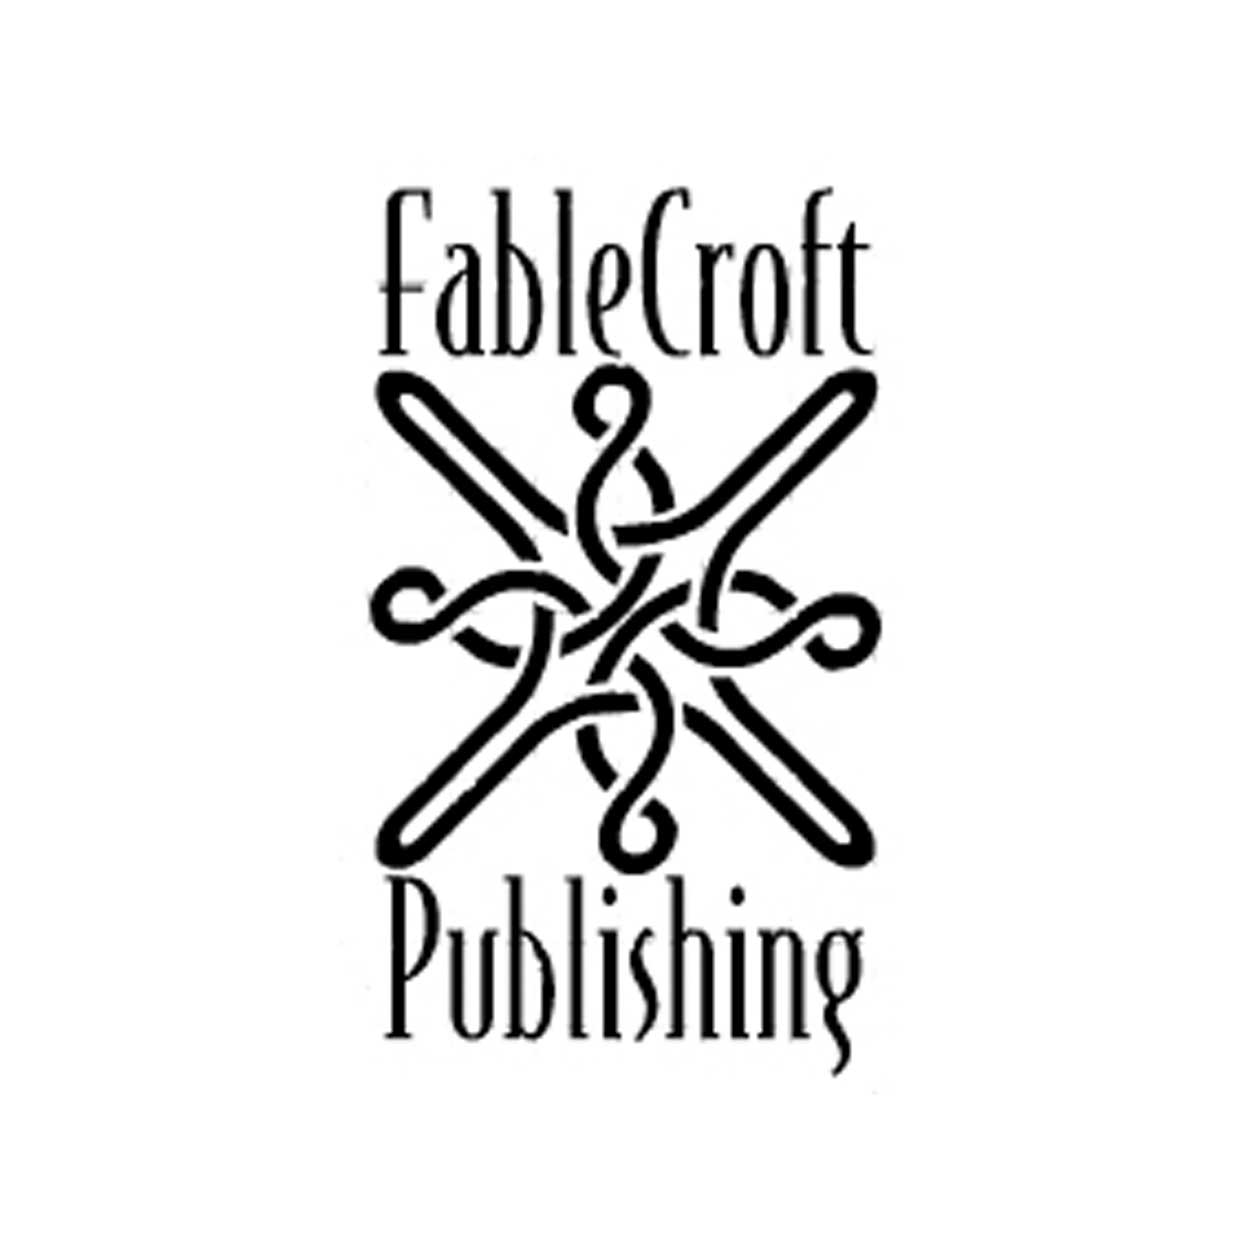 FableCroft Publishing  publishes primarily speculative fiction anthologies, collections and novels, with a strong emphasis on Australian authors and creators.  Find out more here.